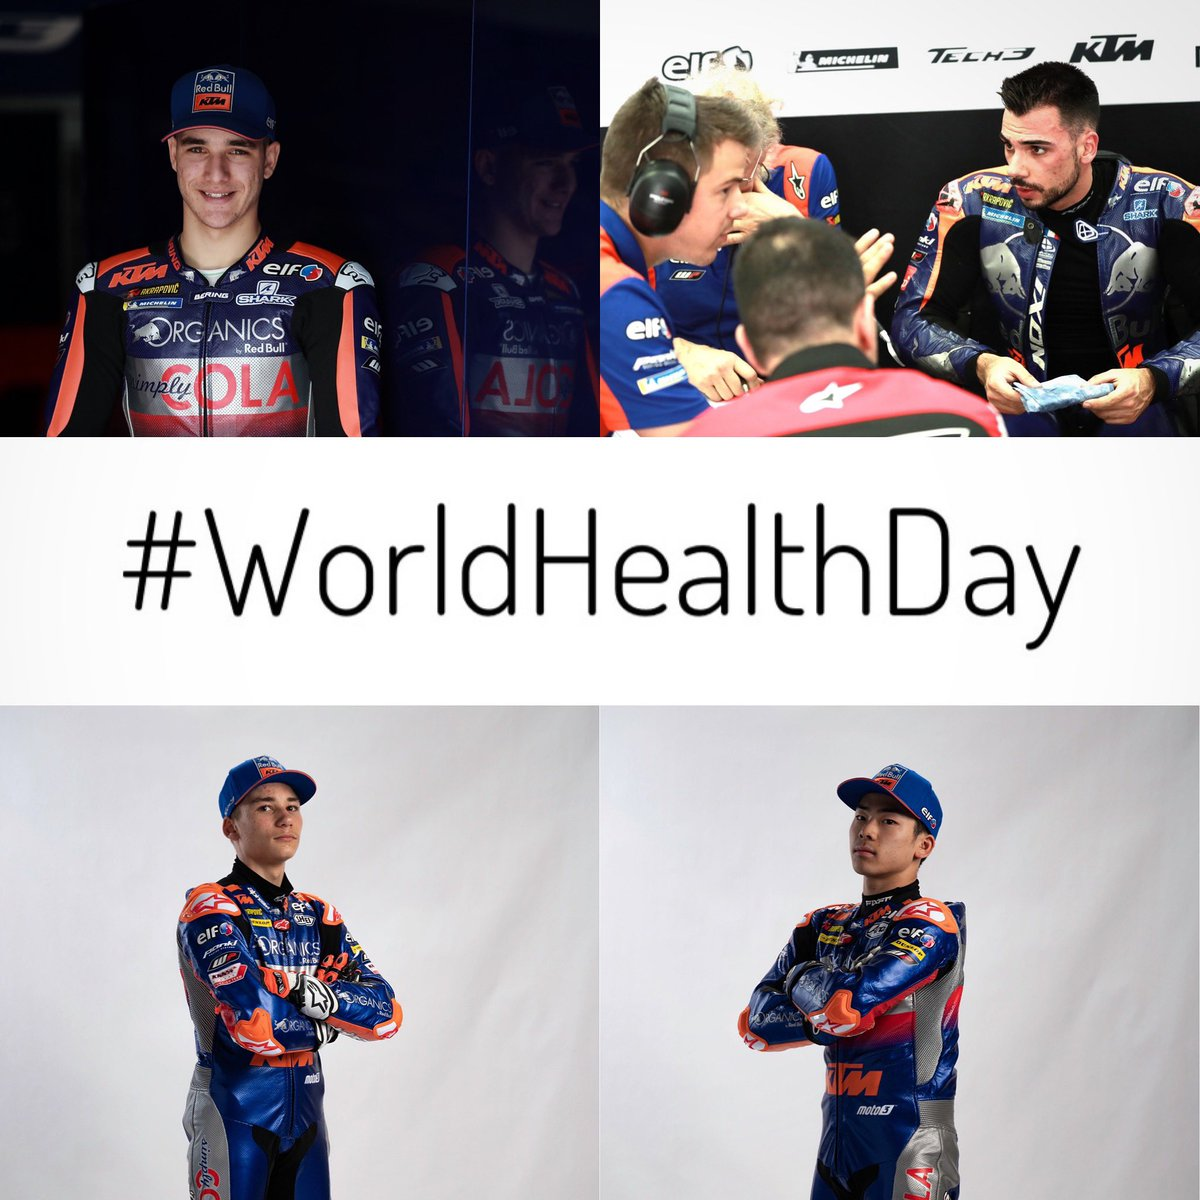 More important than ever in these days 🙌🏻 Stay healthy and #StayAtHome 🙏🏻 #WorldHealthDay #KTM #Tech3 #Moto3 #IL27 #MO88 #DO53 #AS71 #MotoGP @MotoGP #OrganicsByRedBull